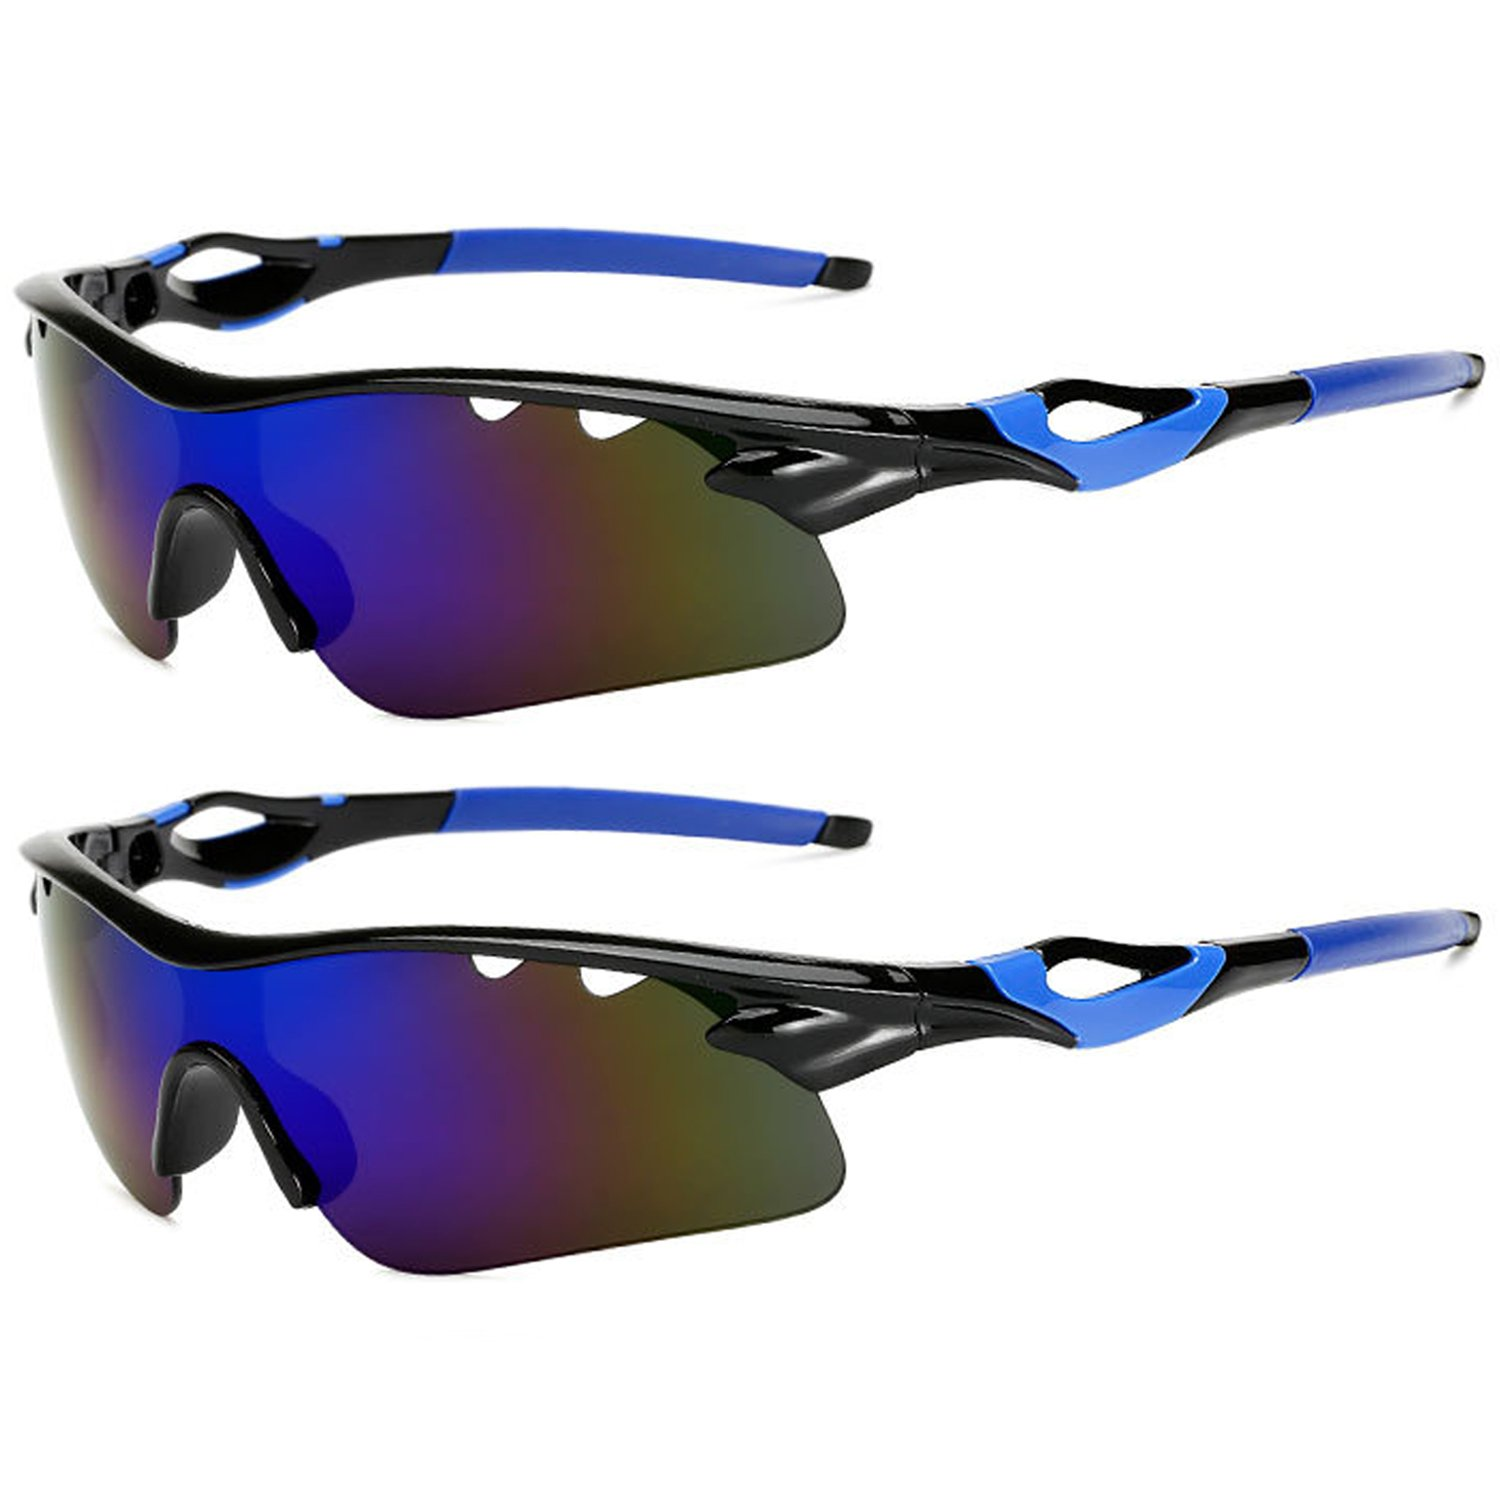 amazon com: polarized sports sunglasses glare uv400 protection hd night  vision for motorcycle riding glasses (2 pack) (blue lens): clothing